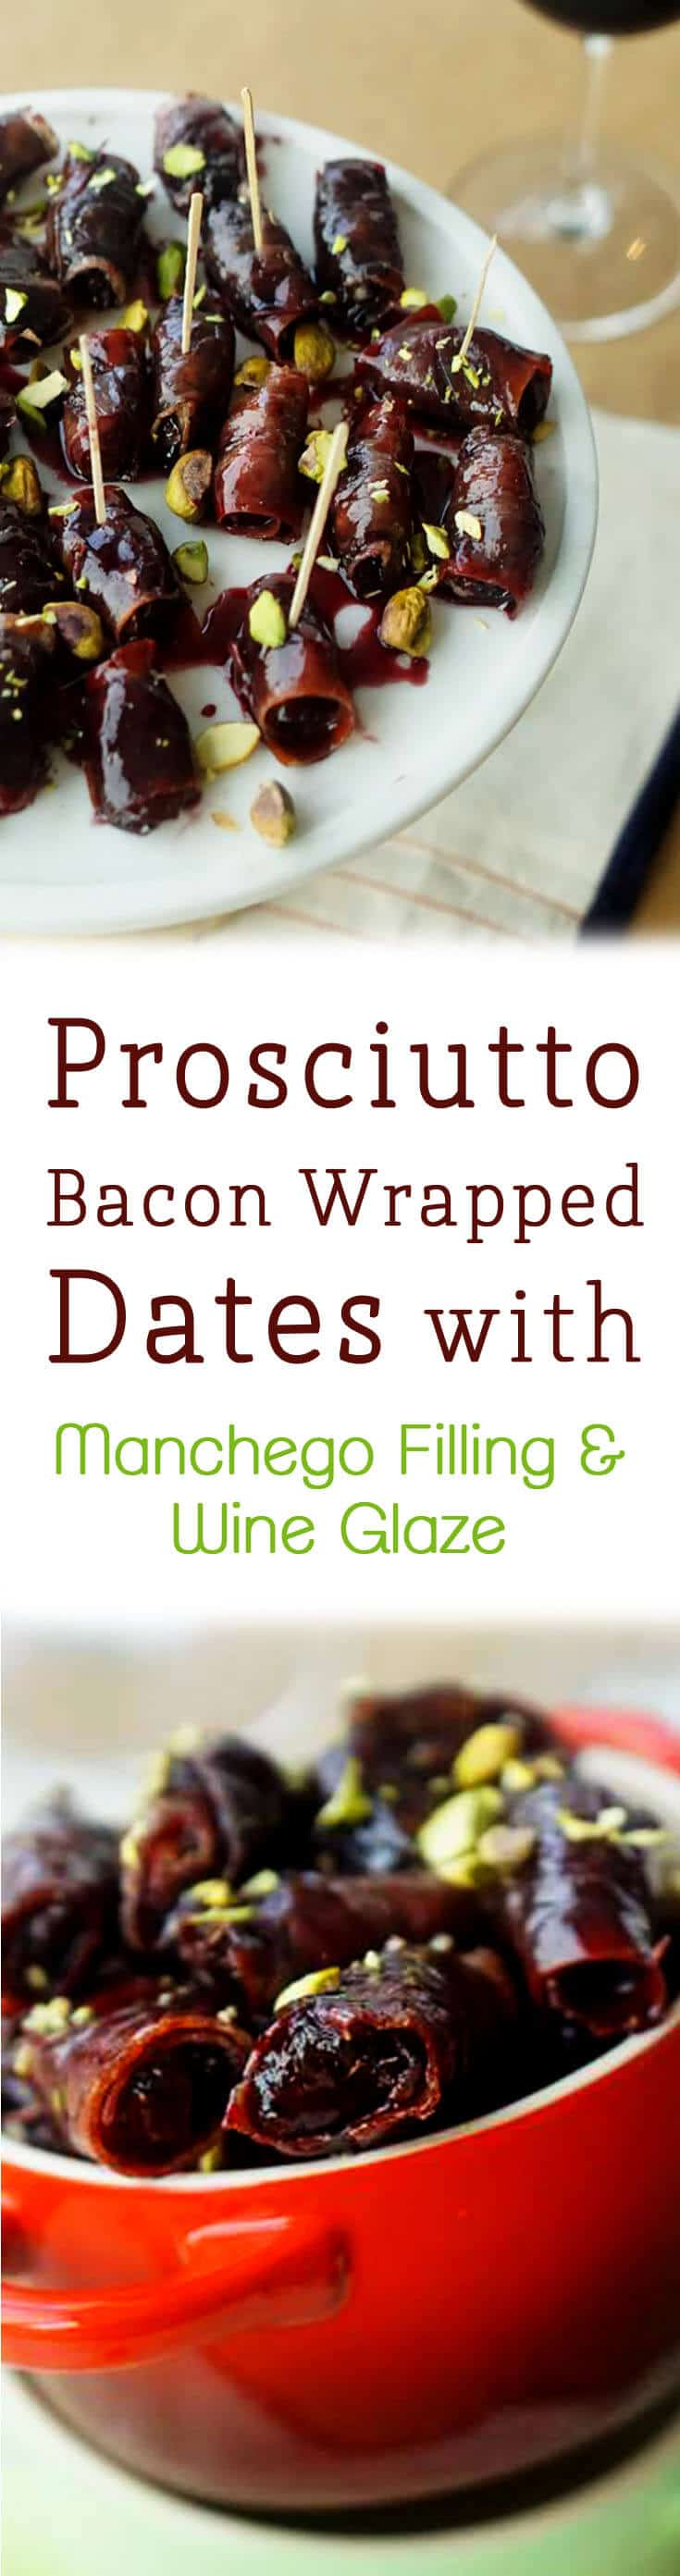 These prosciutto bacon wrapped dates with manchego filling and wine reduction are a perfect bite for a holiday party!